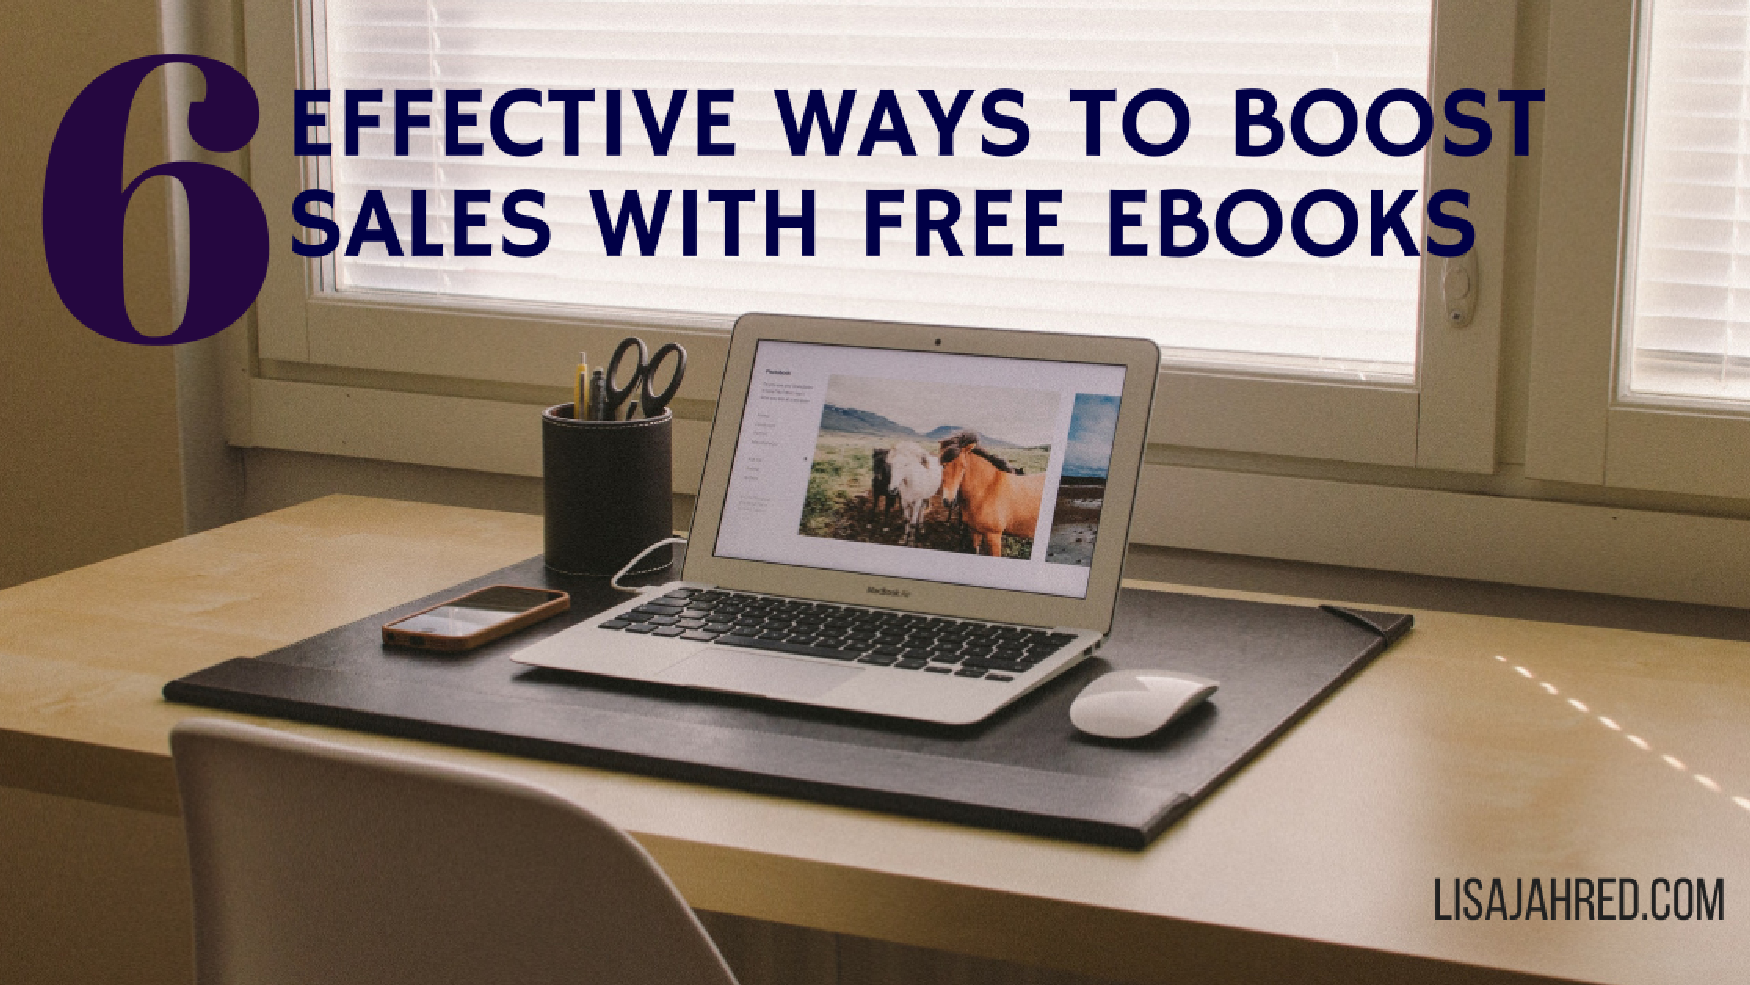 Use PDF eBooks to boost online sales